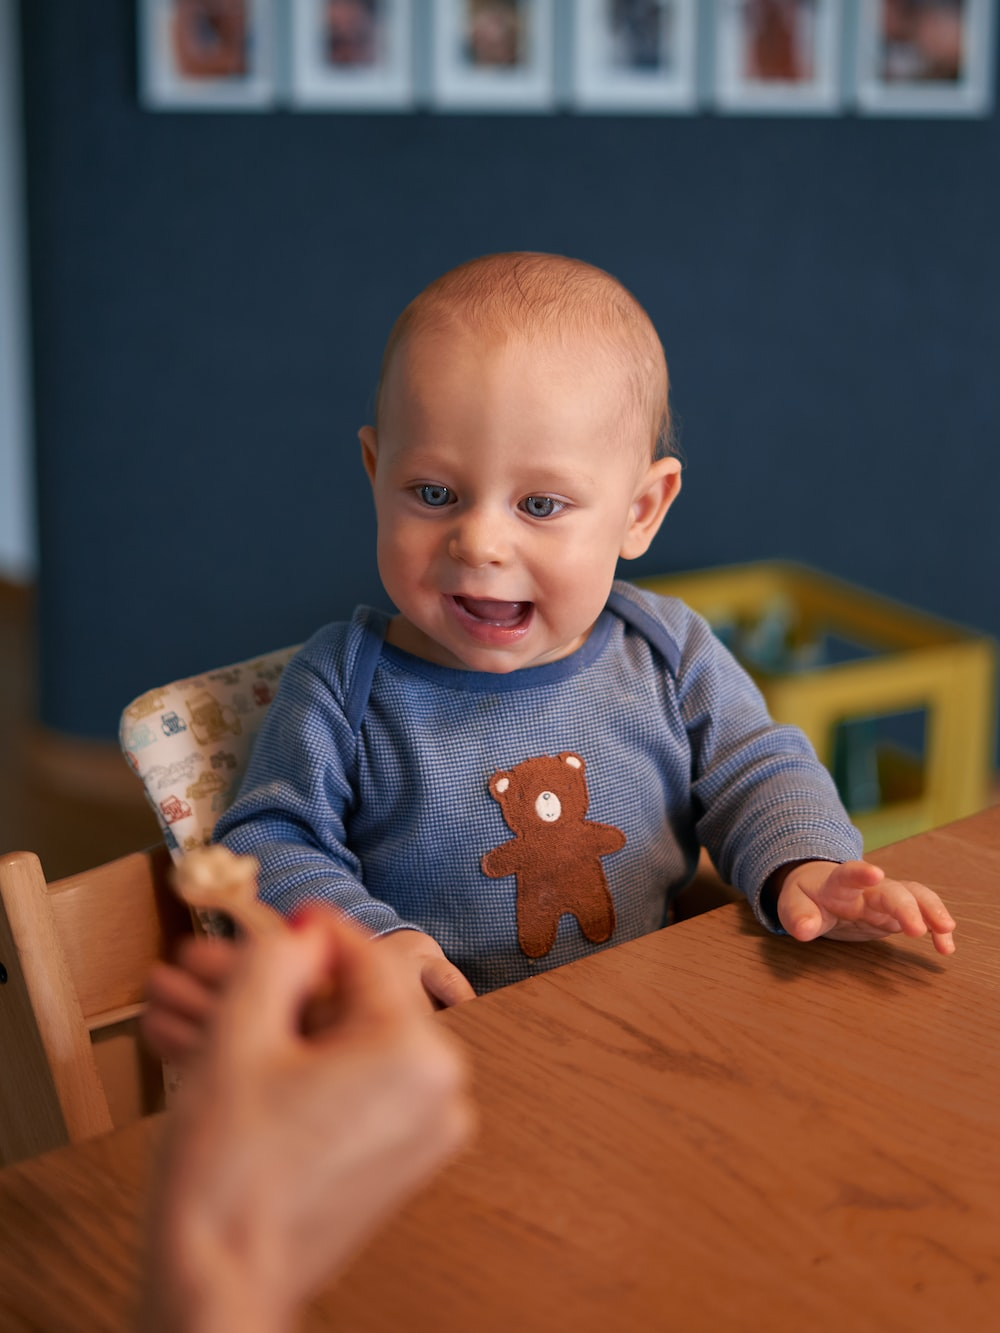 baby in blue sweater sitting on brown wooden high chair